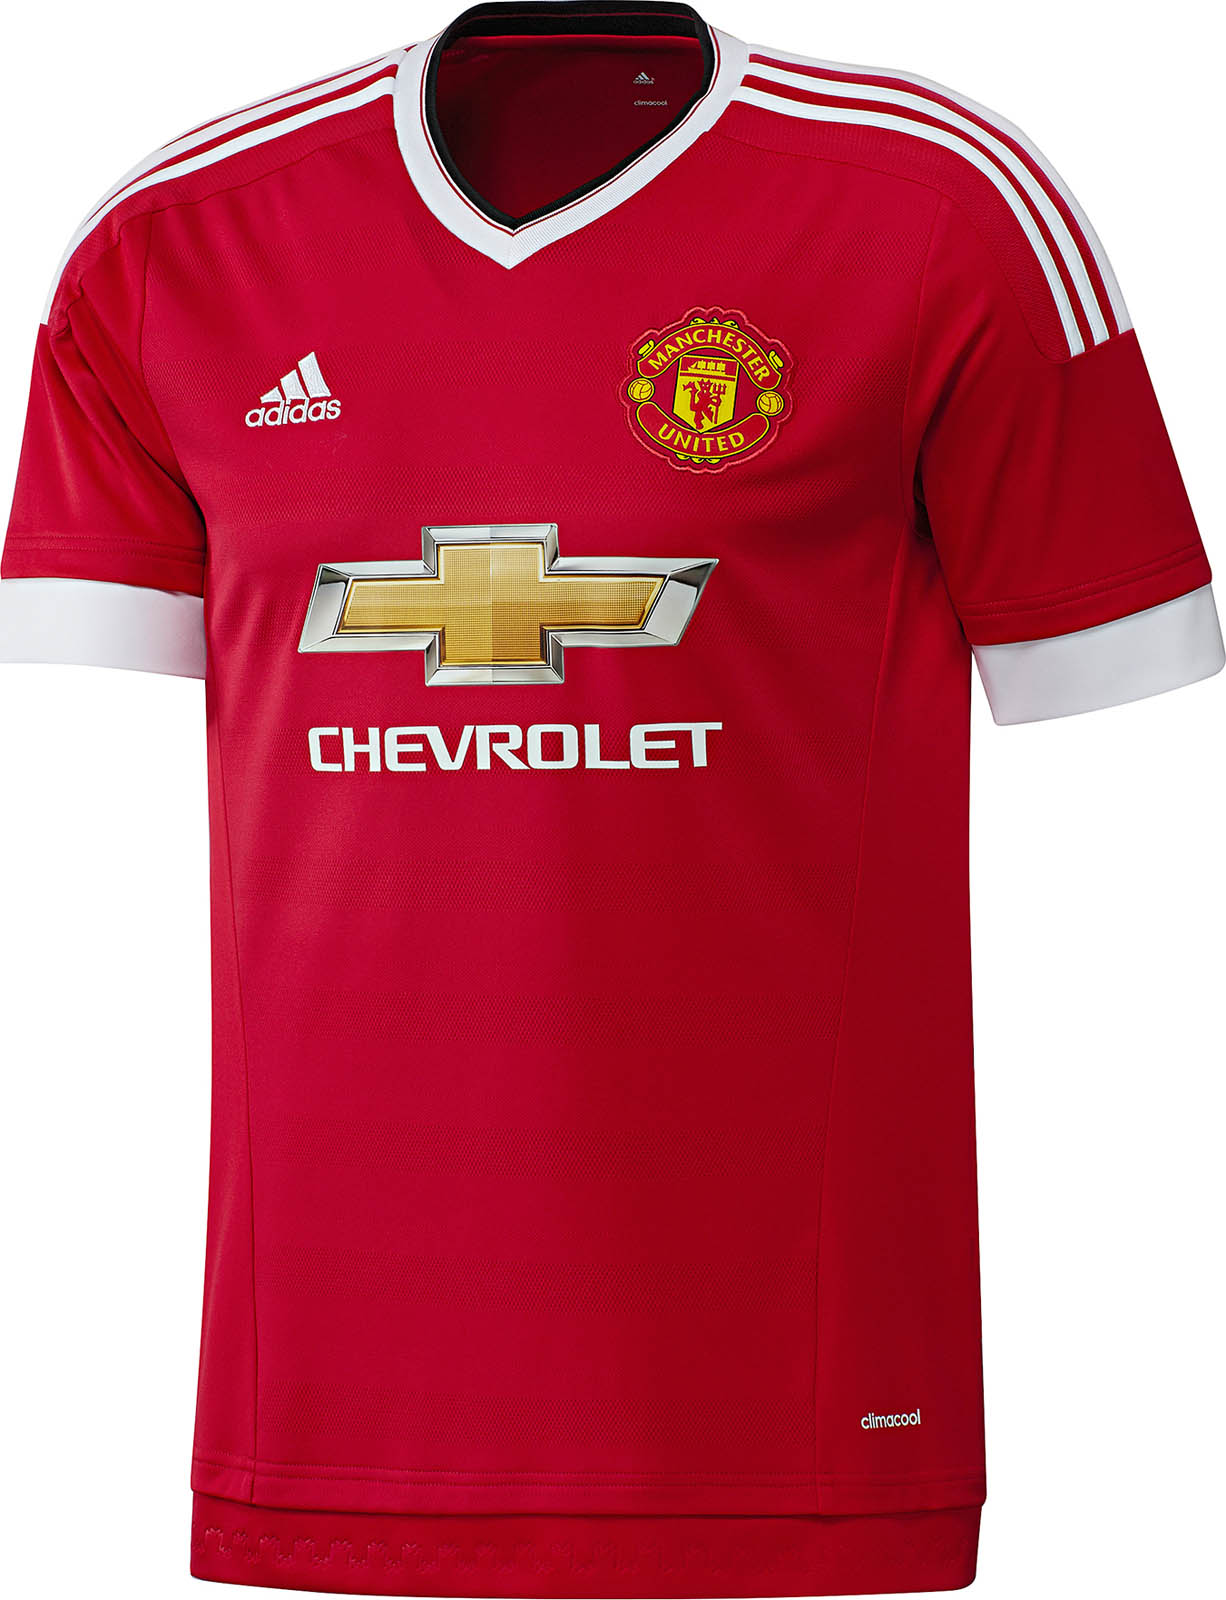 adidas-manchester-united-15-16-home-kit (1)